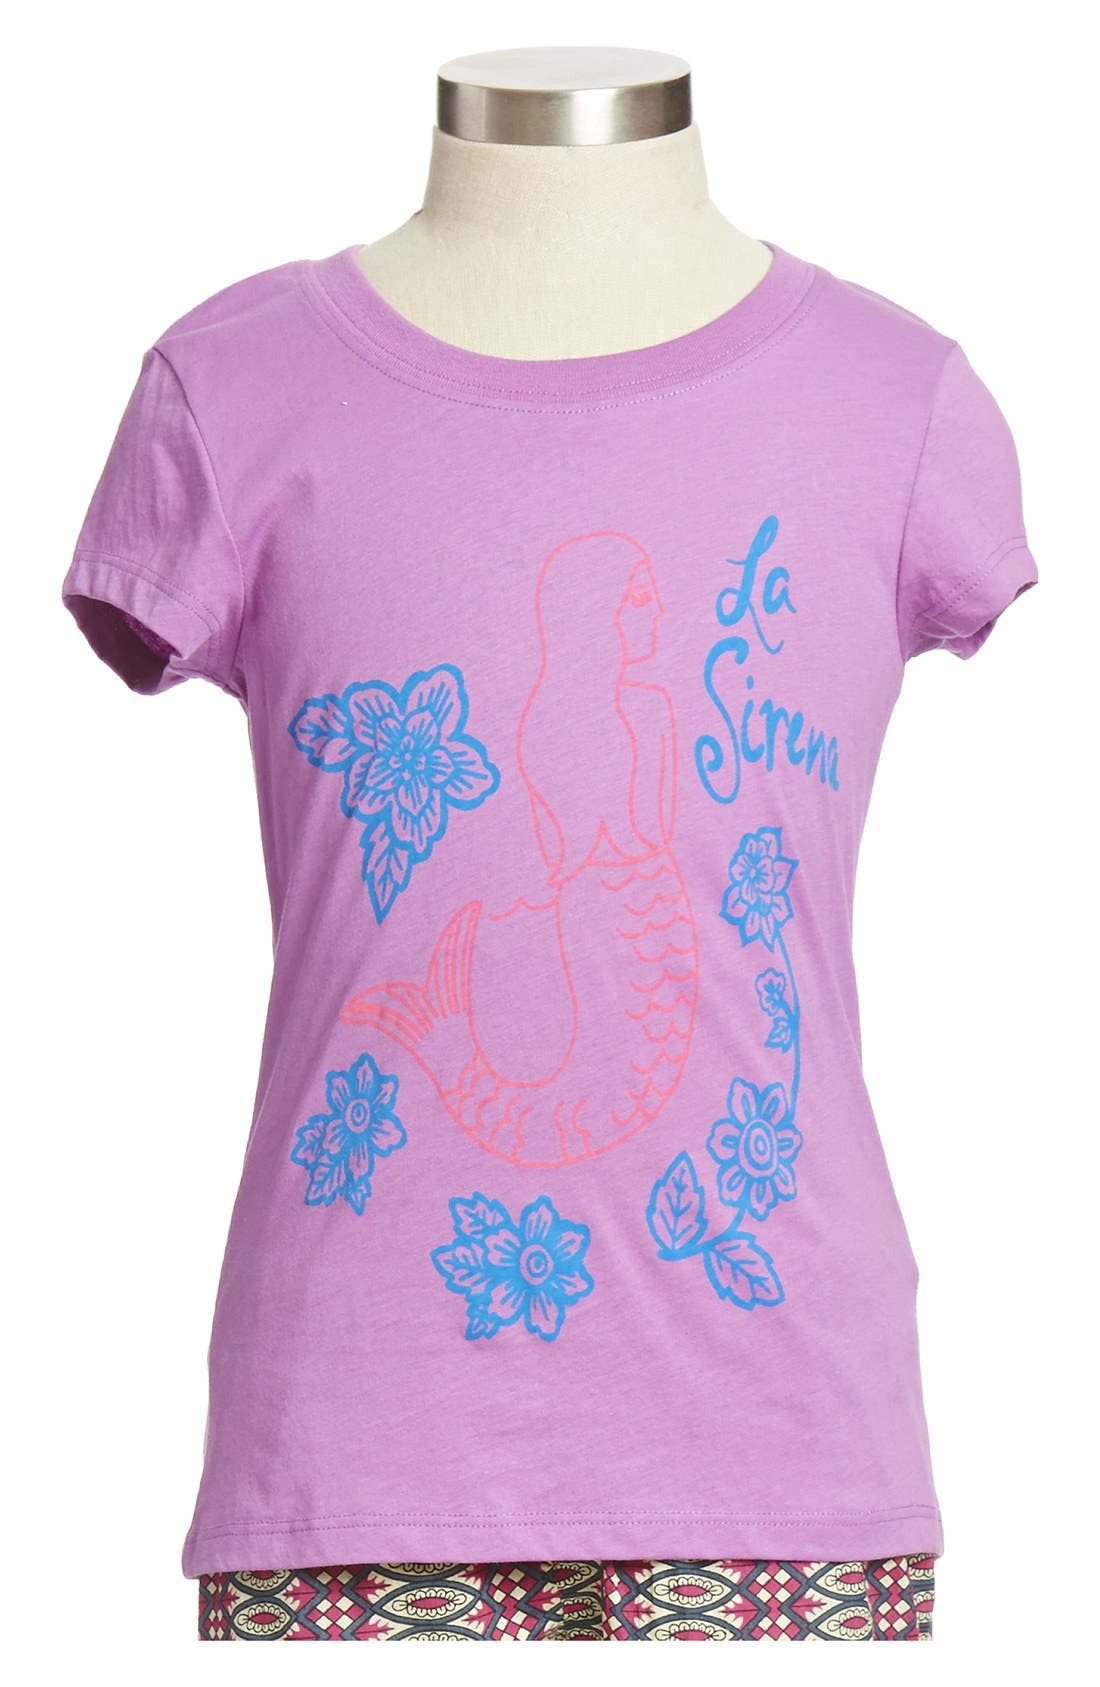 Main Image - Peek 'La Sirena' Graphic Cotton Tee (Toddler Girls, Little Girls & Big Girls)